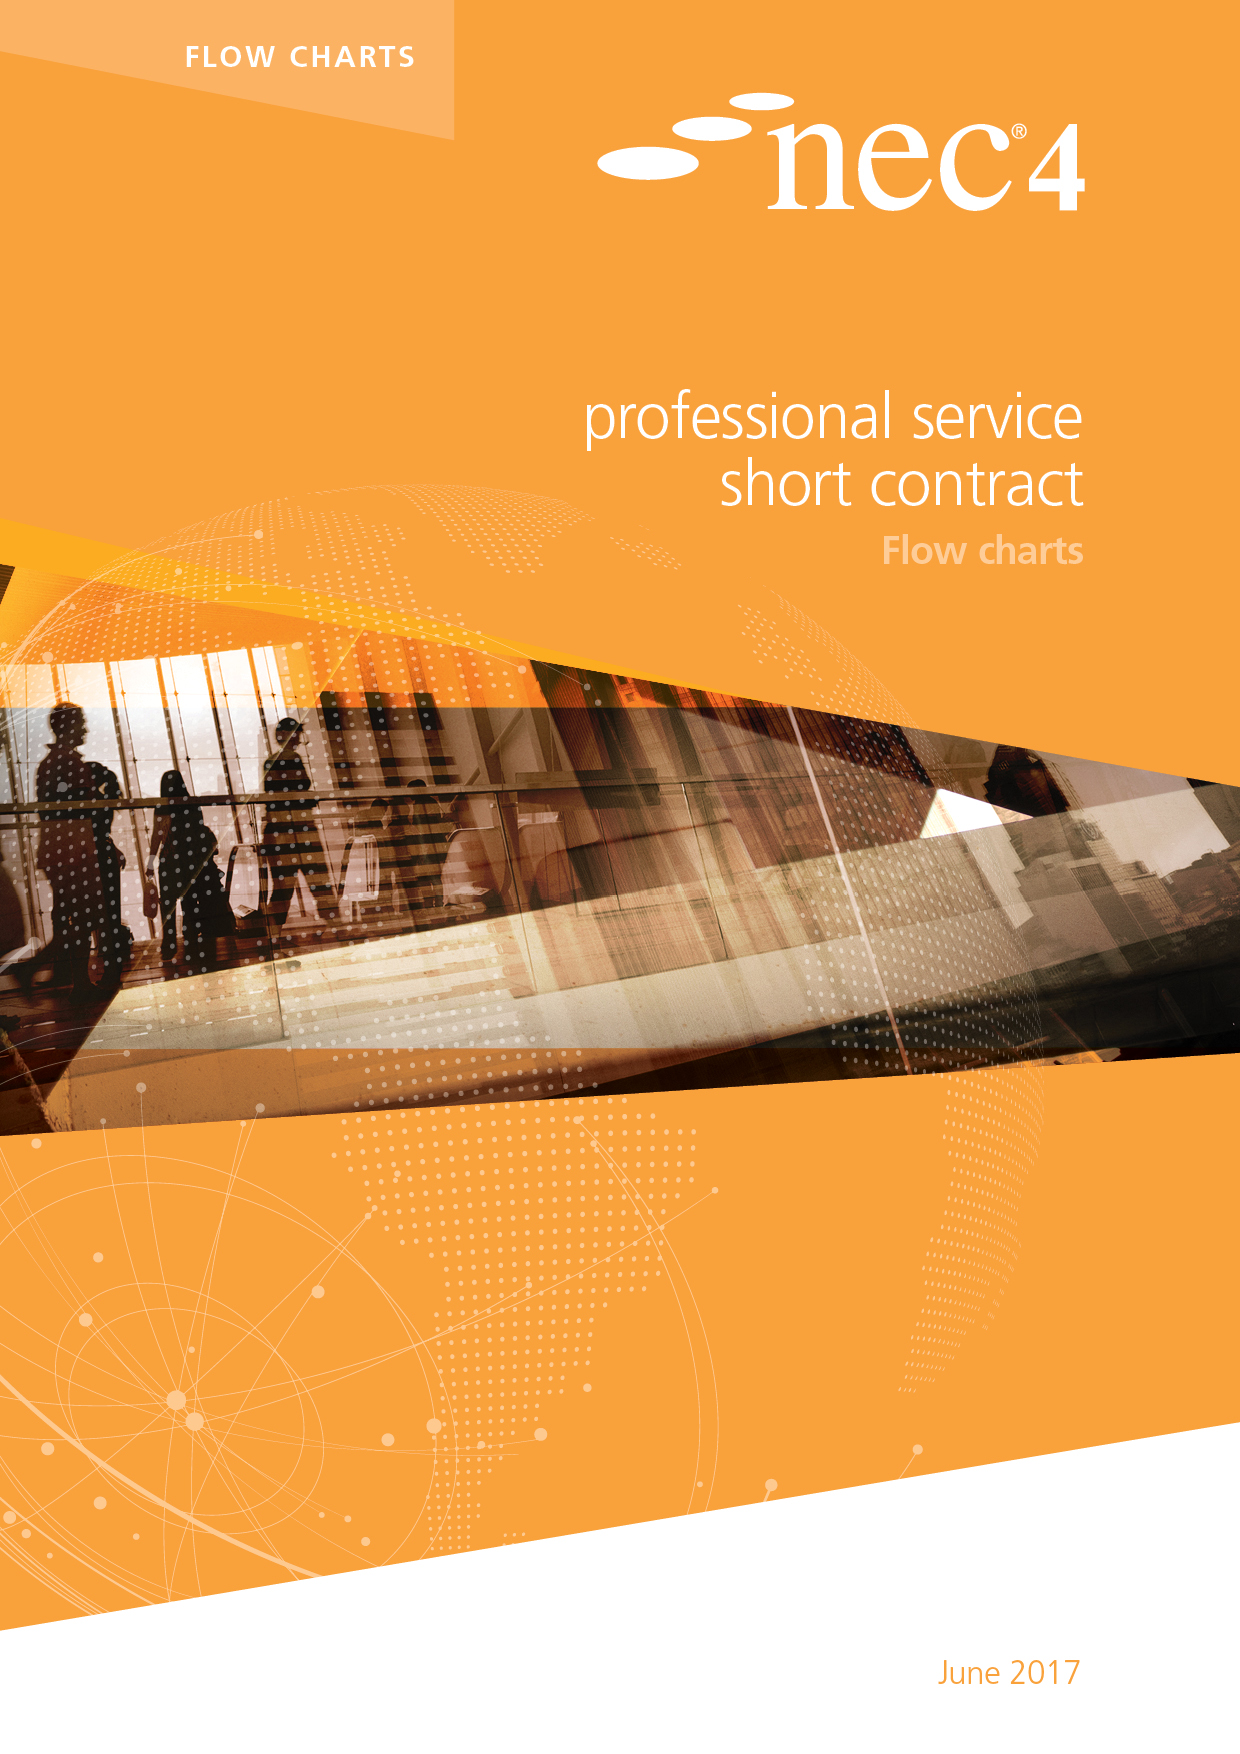 NEC4: Professional Service Short Contract Flow Charts